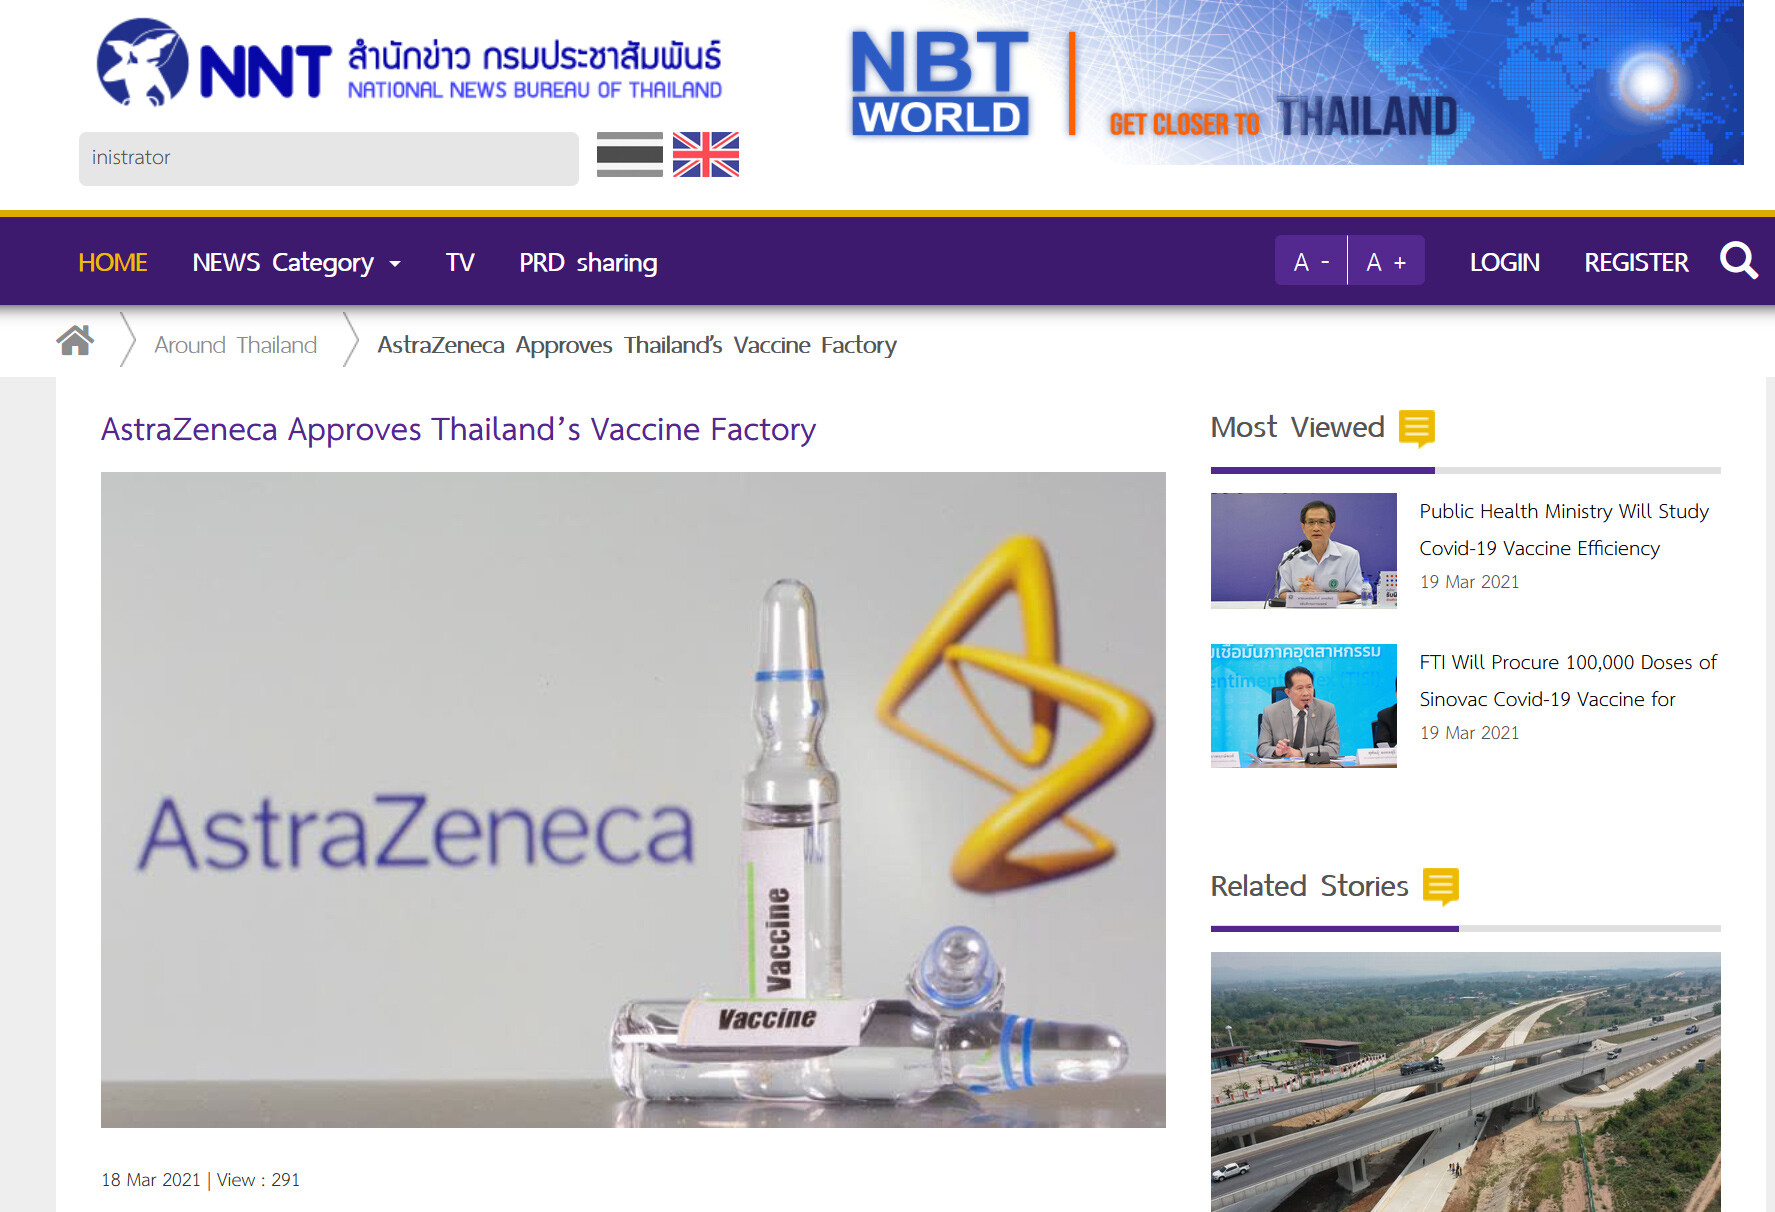 AstraZeneca approved the vaccine manufacturing factory in Thailand